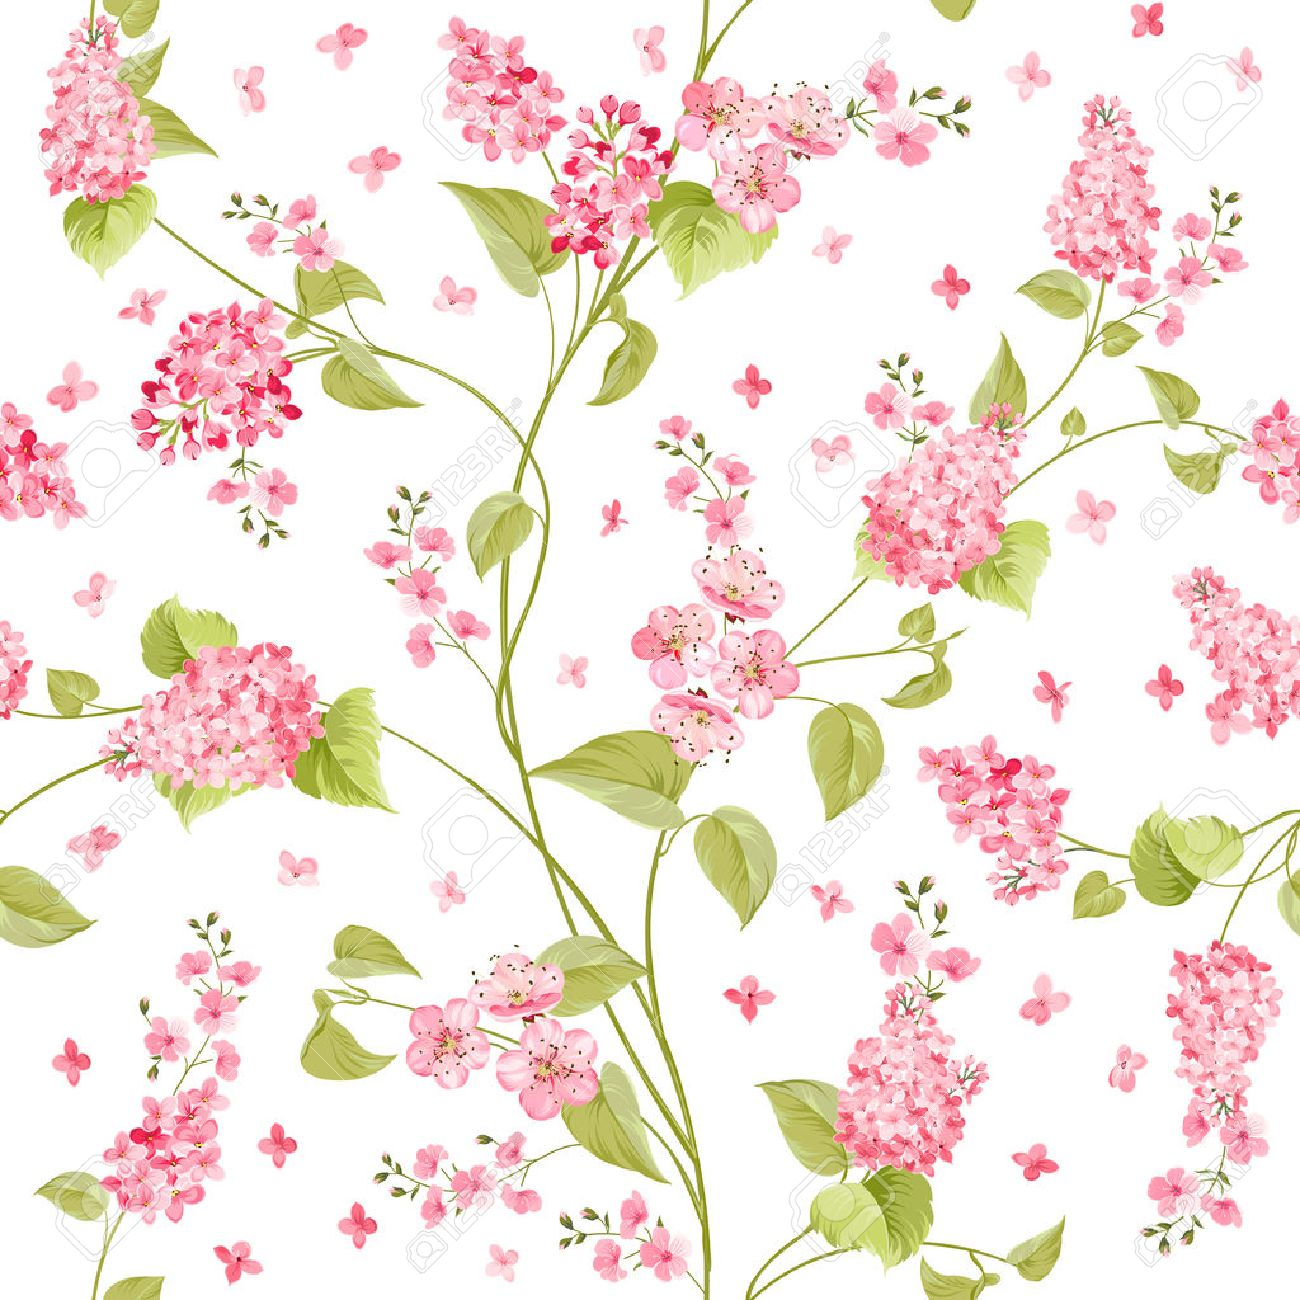 Fabric Texture Pattern With Seamless Flowers The Floral Seamless